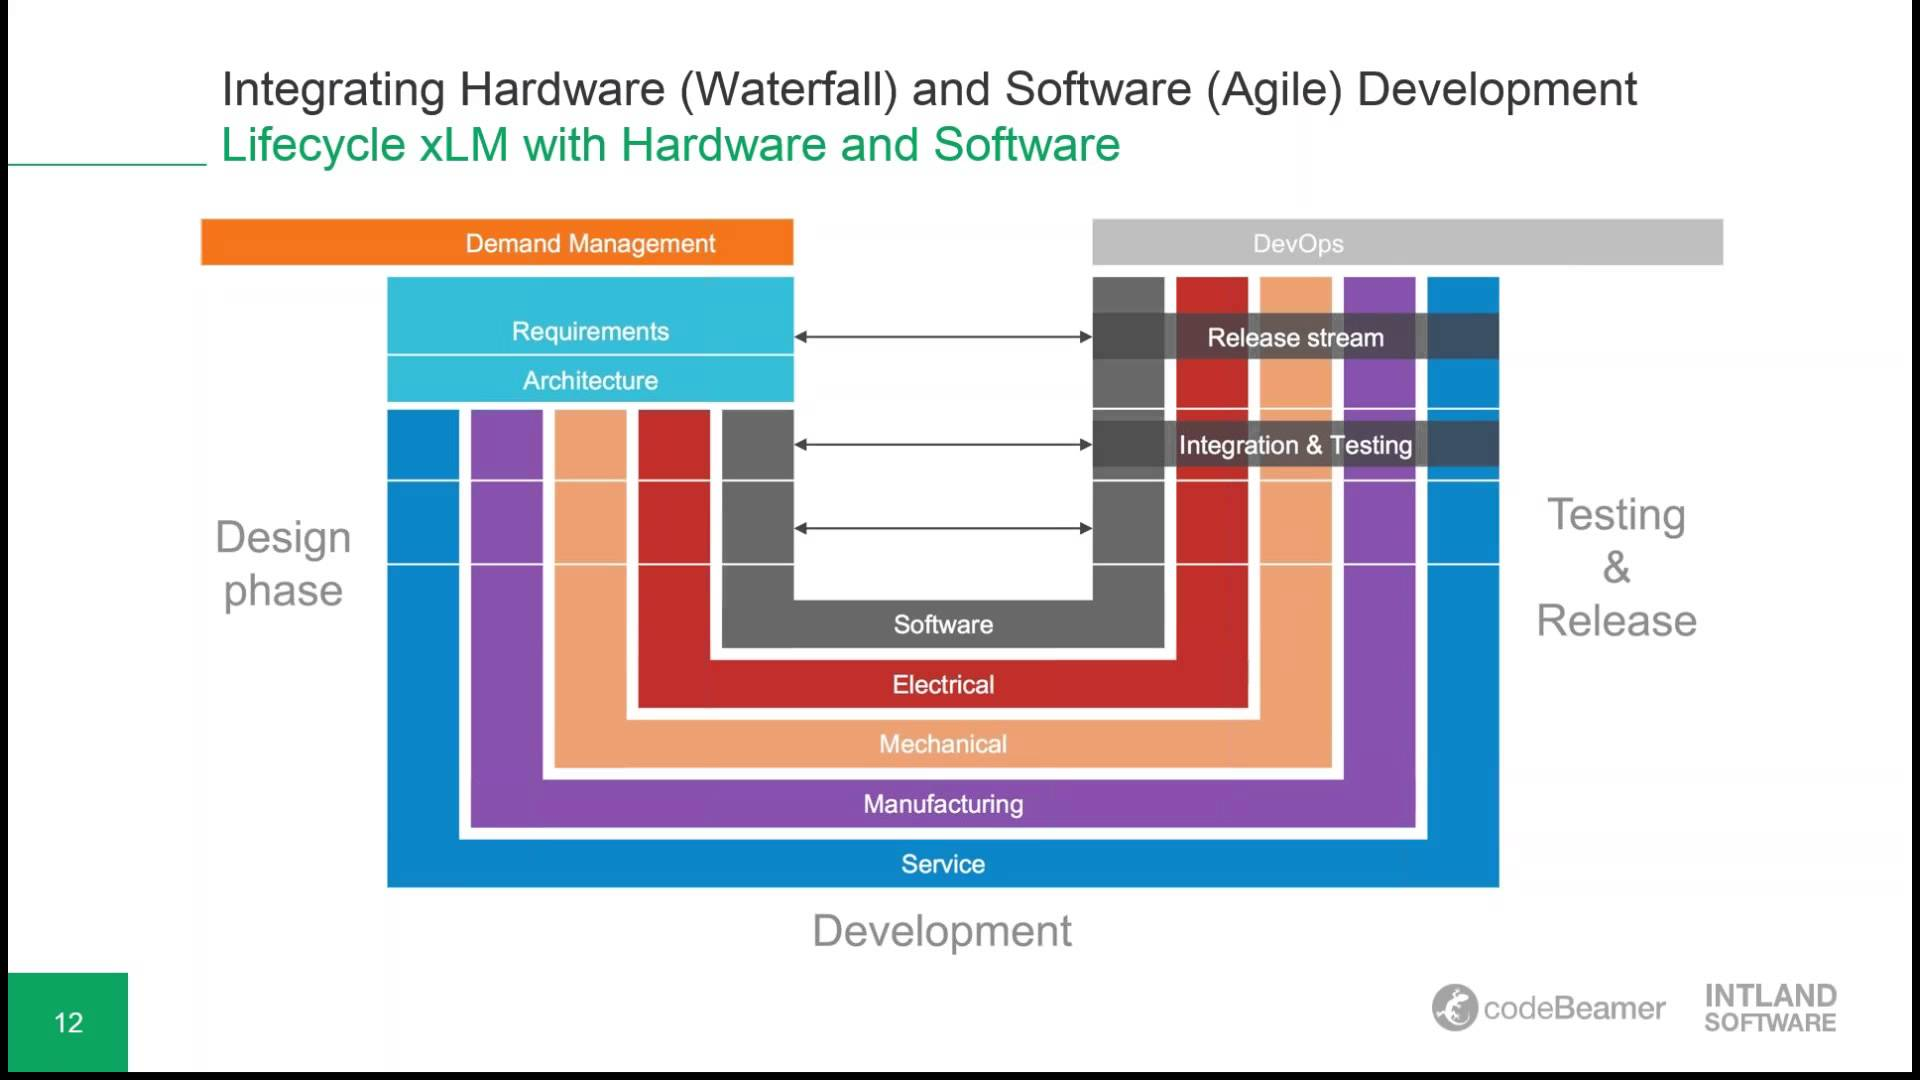 Integrating Hardware (Waterfall) and Software (Agile) Development